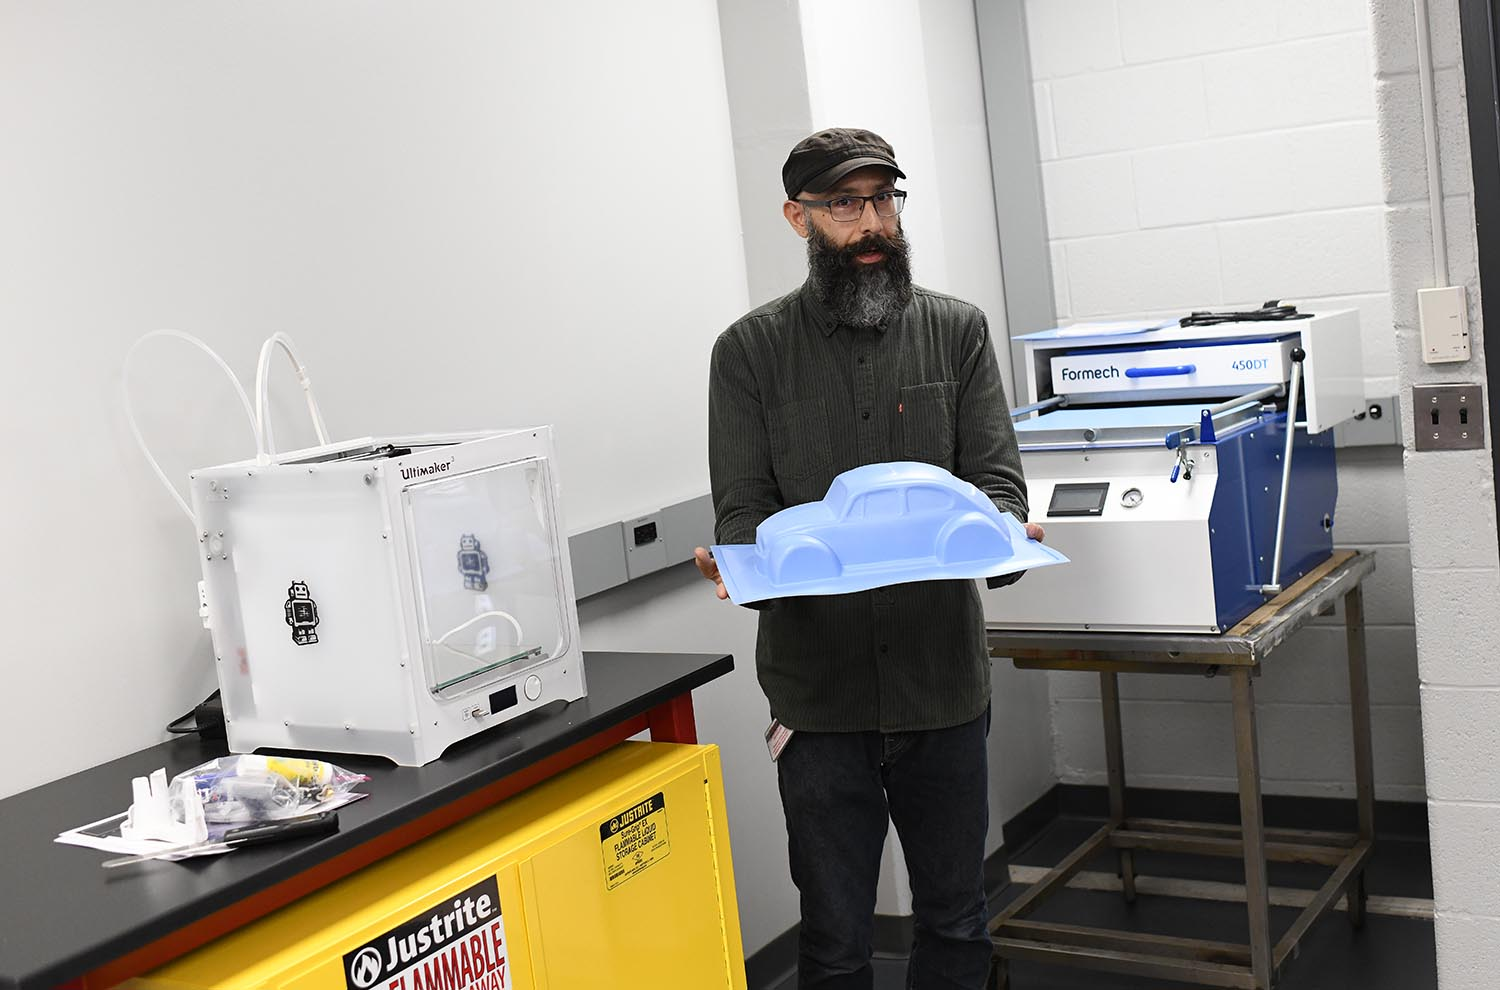 Lopez shows off a vacuum forming tool, which is used to form plastic around a mold and create a permanent object. At left is a 3-D printer.